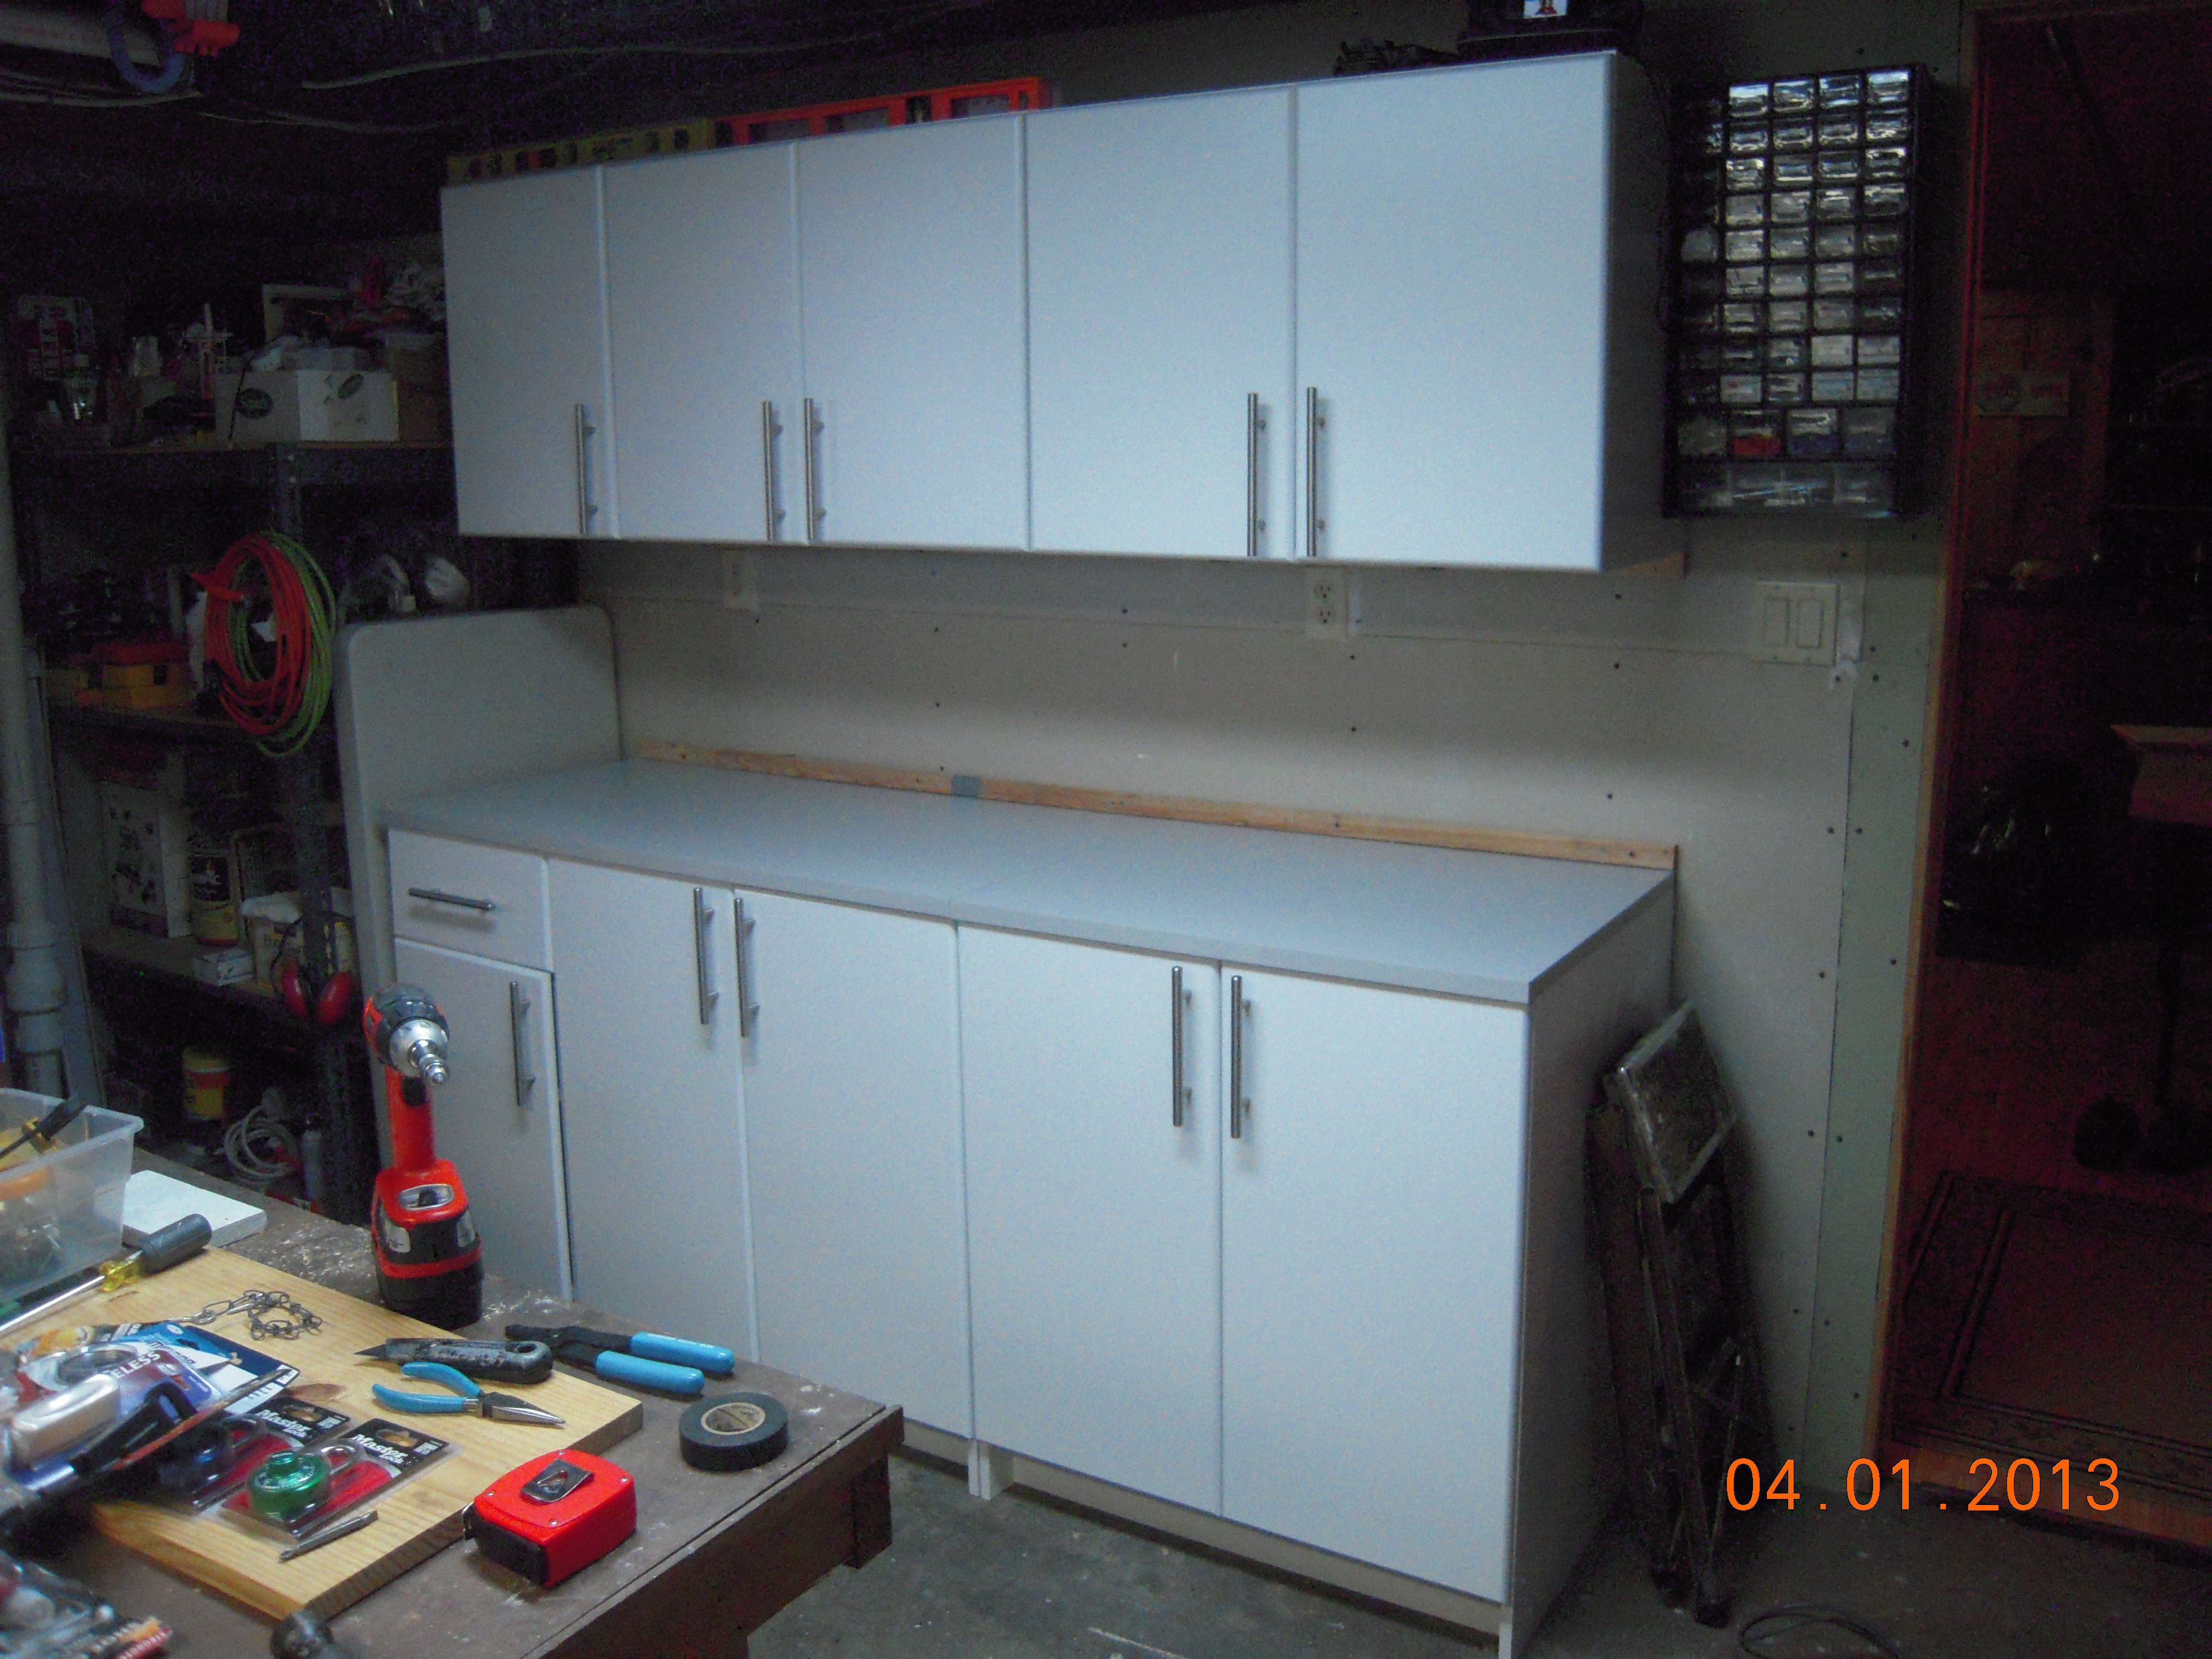 Step 4) All of the matching base cabinets are installed below the wall cabinets